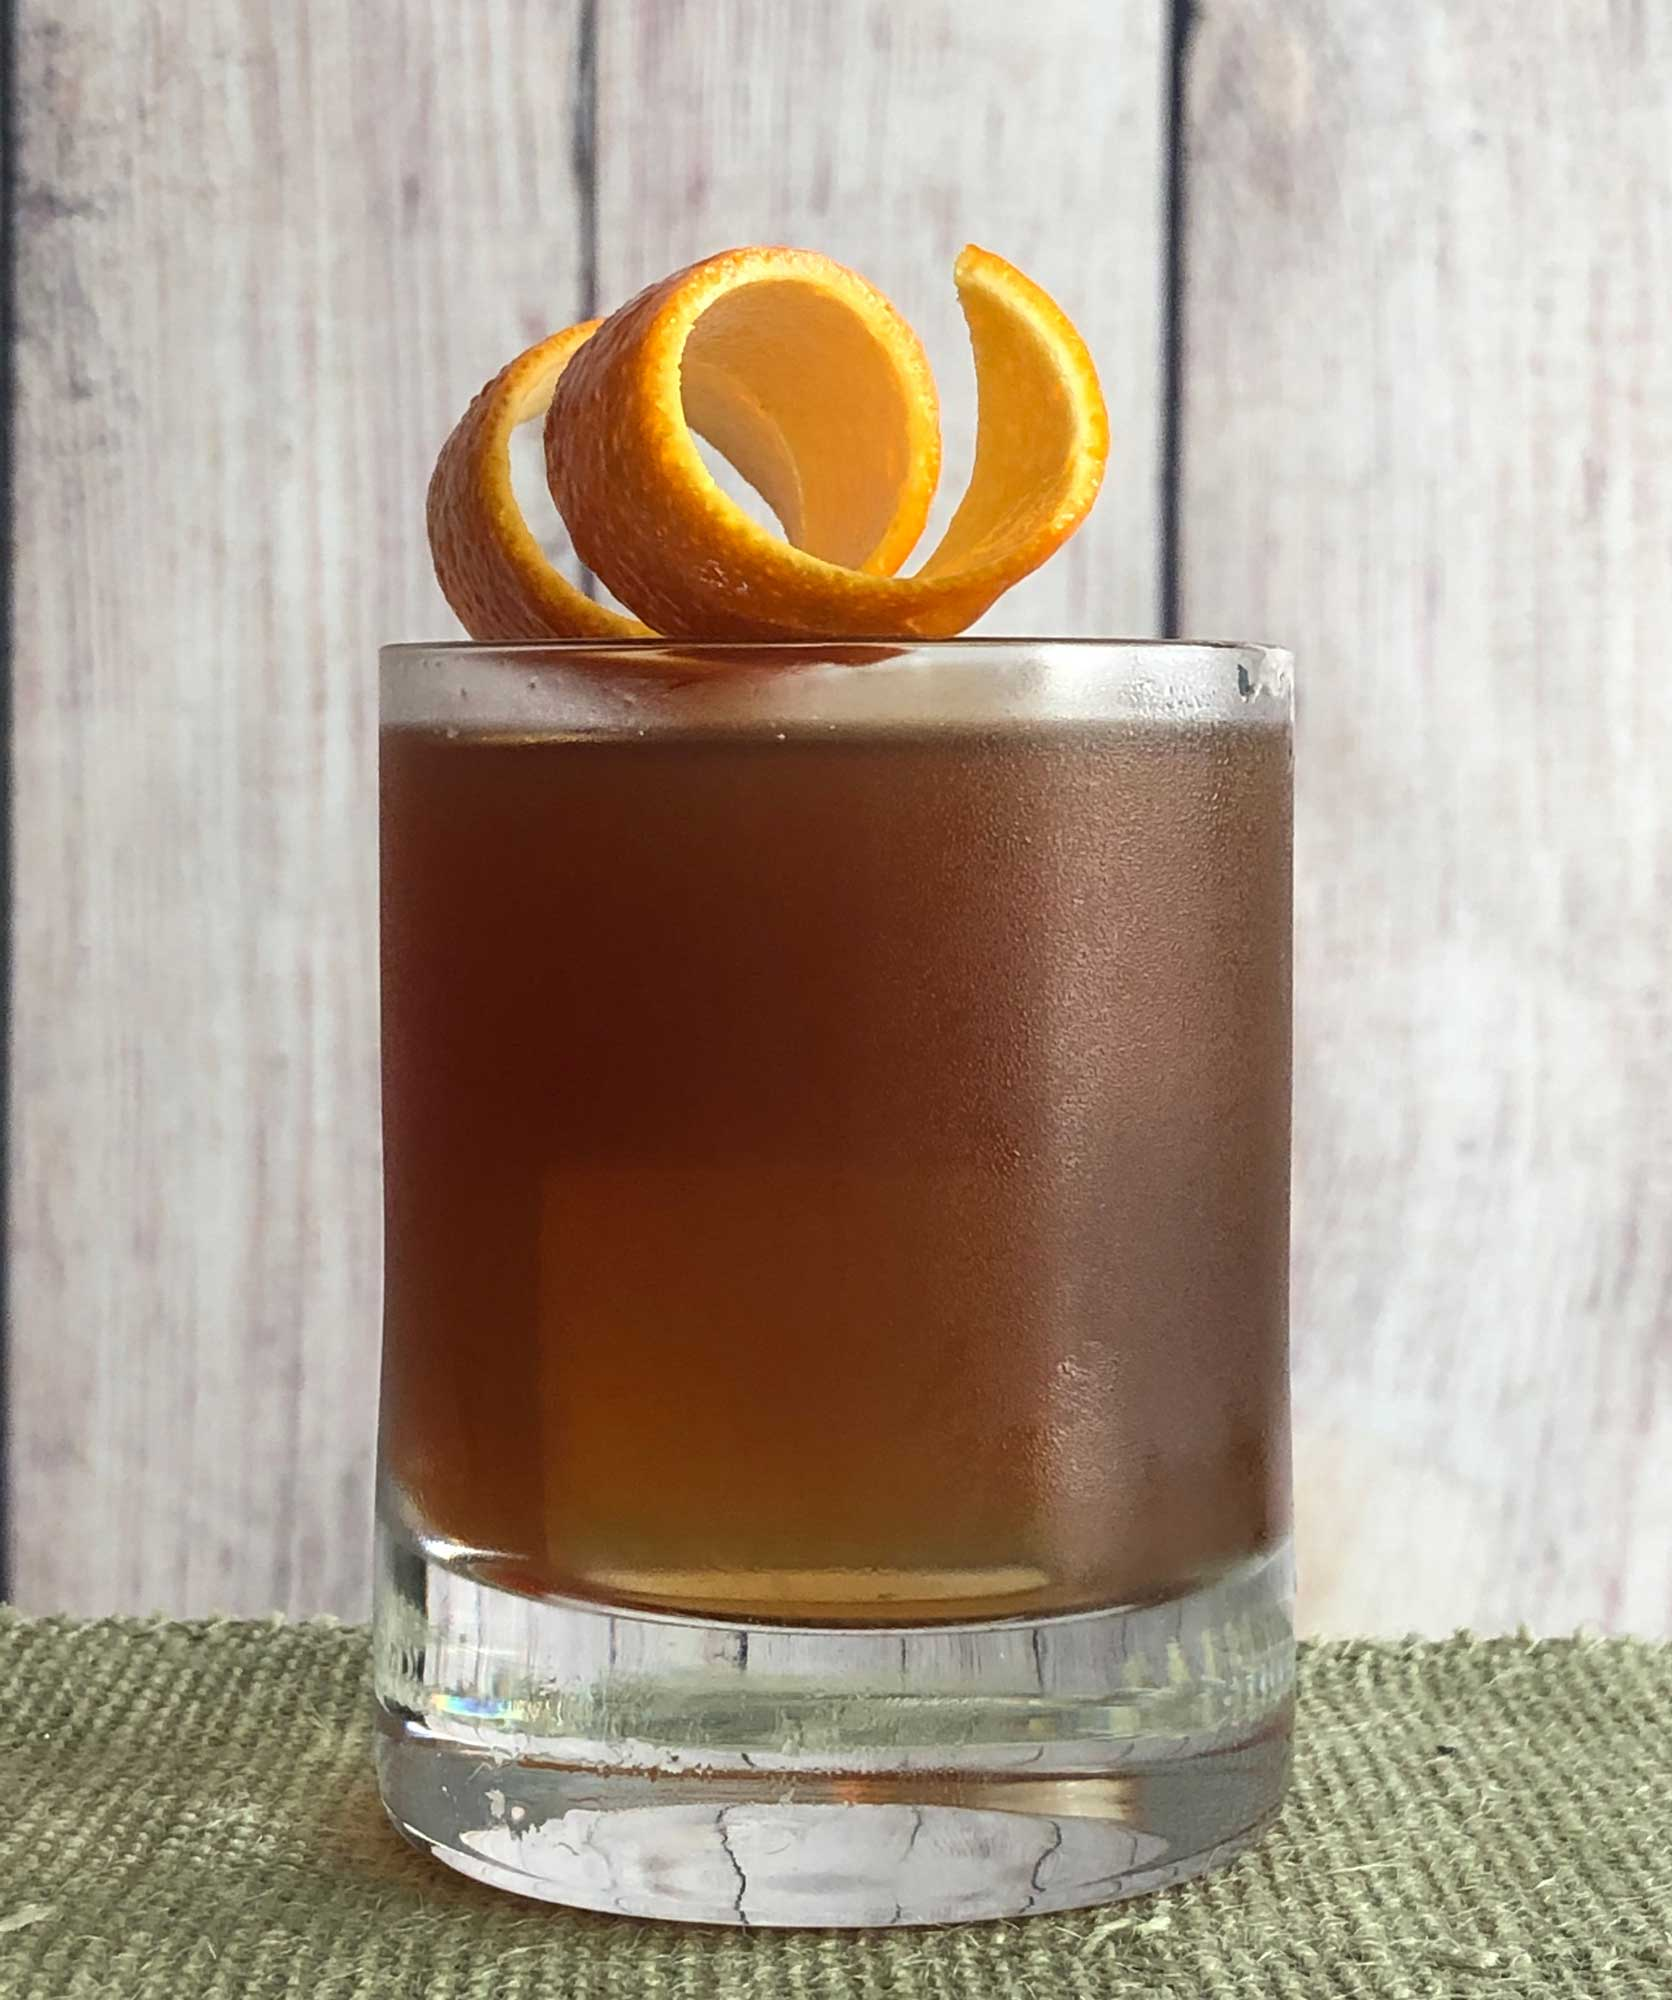 An example of the Sinnerman, the mixed drink (cocktail), variation of a drink by Mike Fleming, Westbridge, Cambridge, MA, featuring Cocchi Vermouth di Torino, Salers Gentian Apéritif, and St. Elizabeth Allspice Dram; photo by Lee Edwards